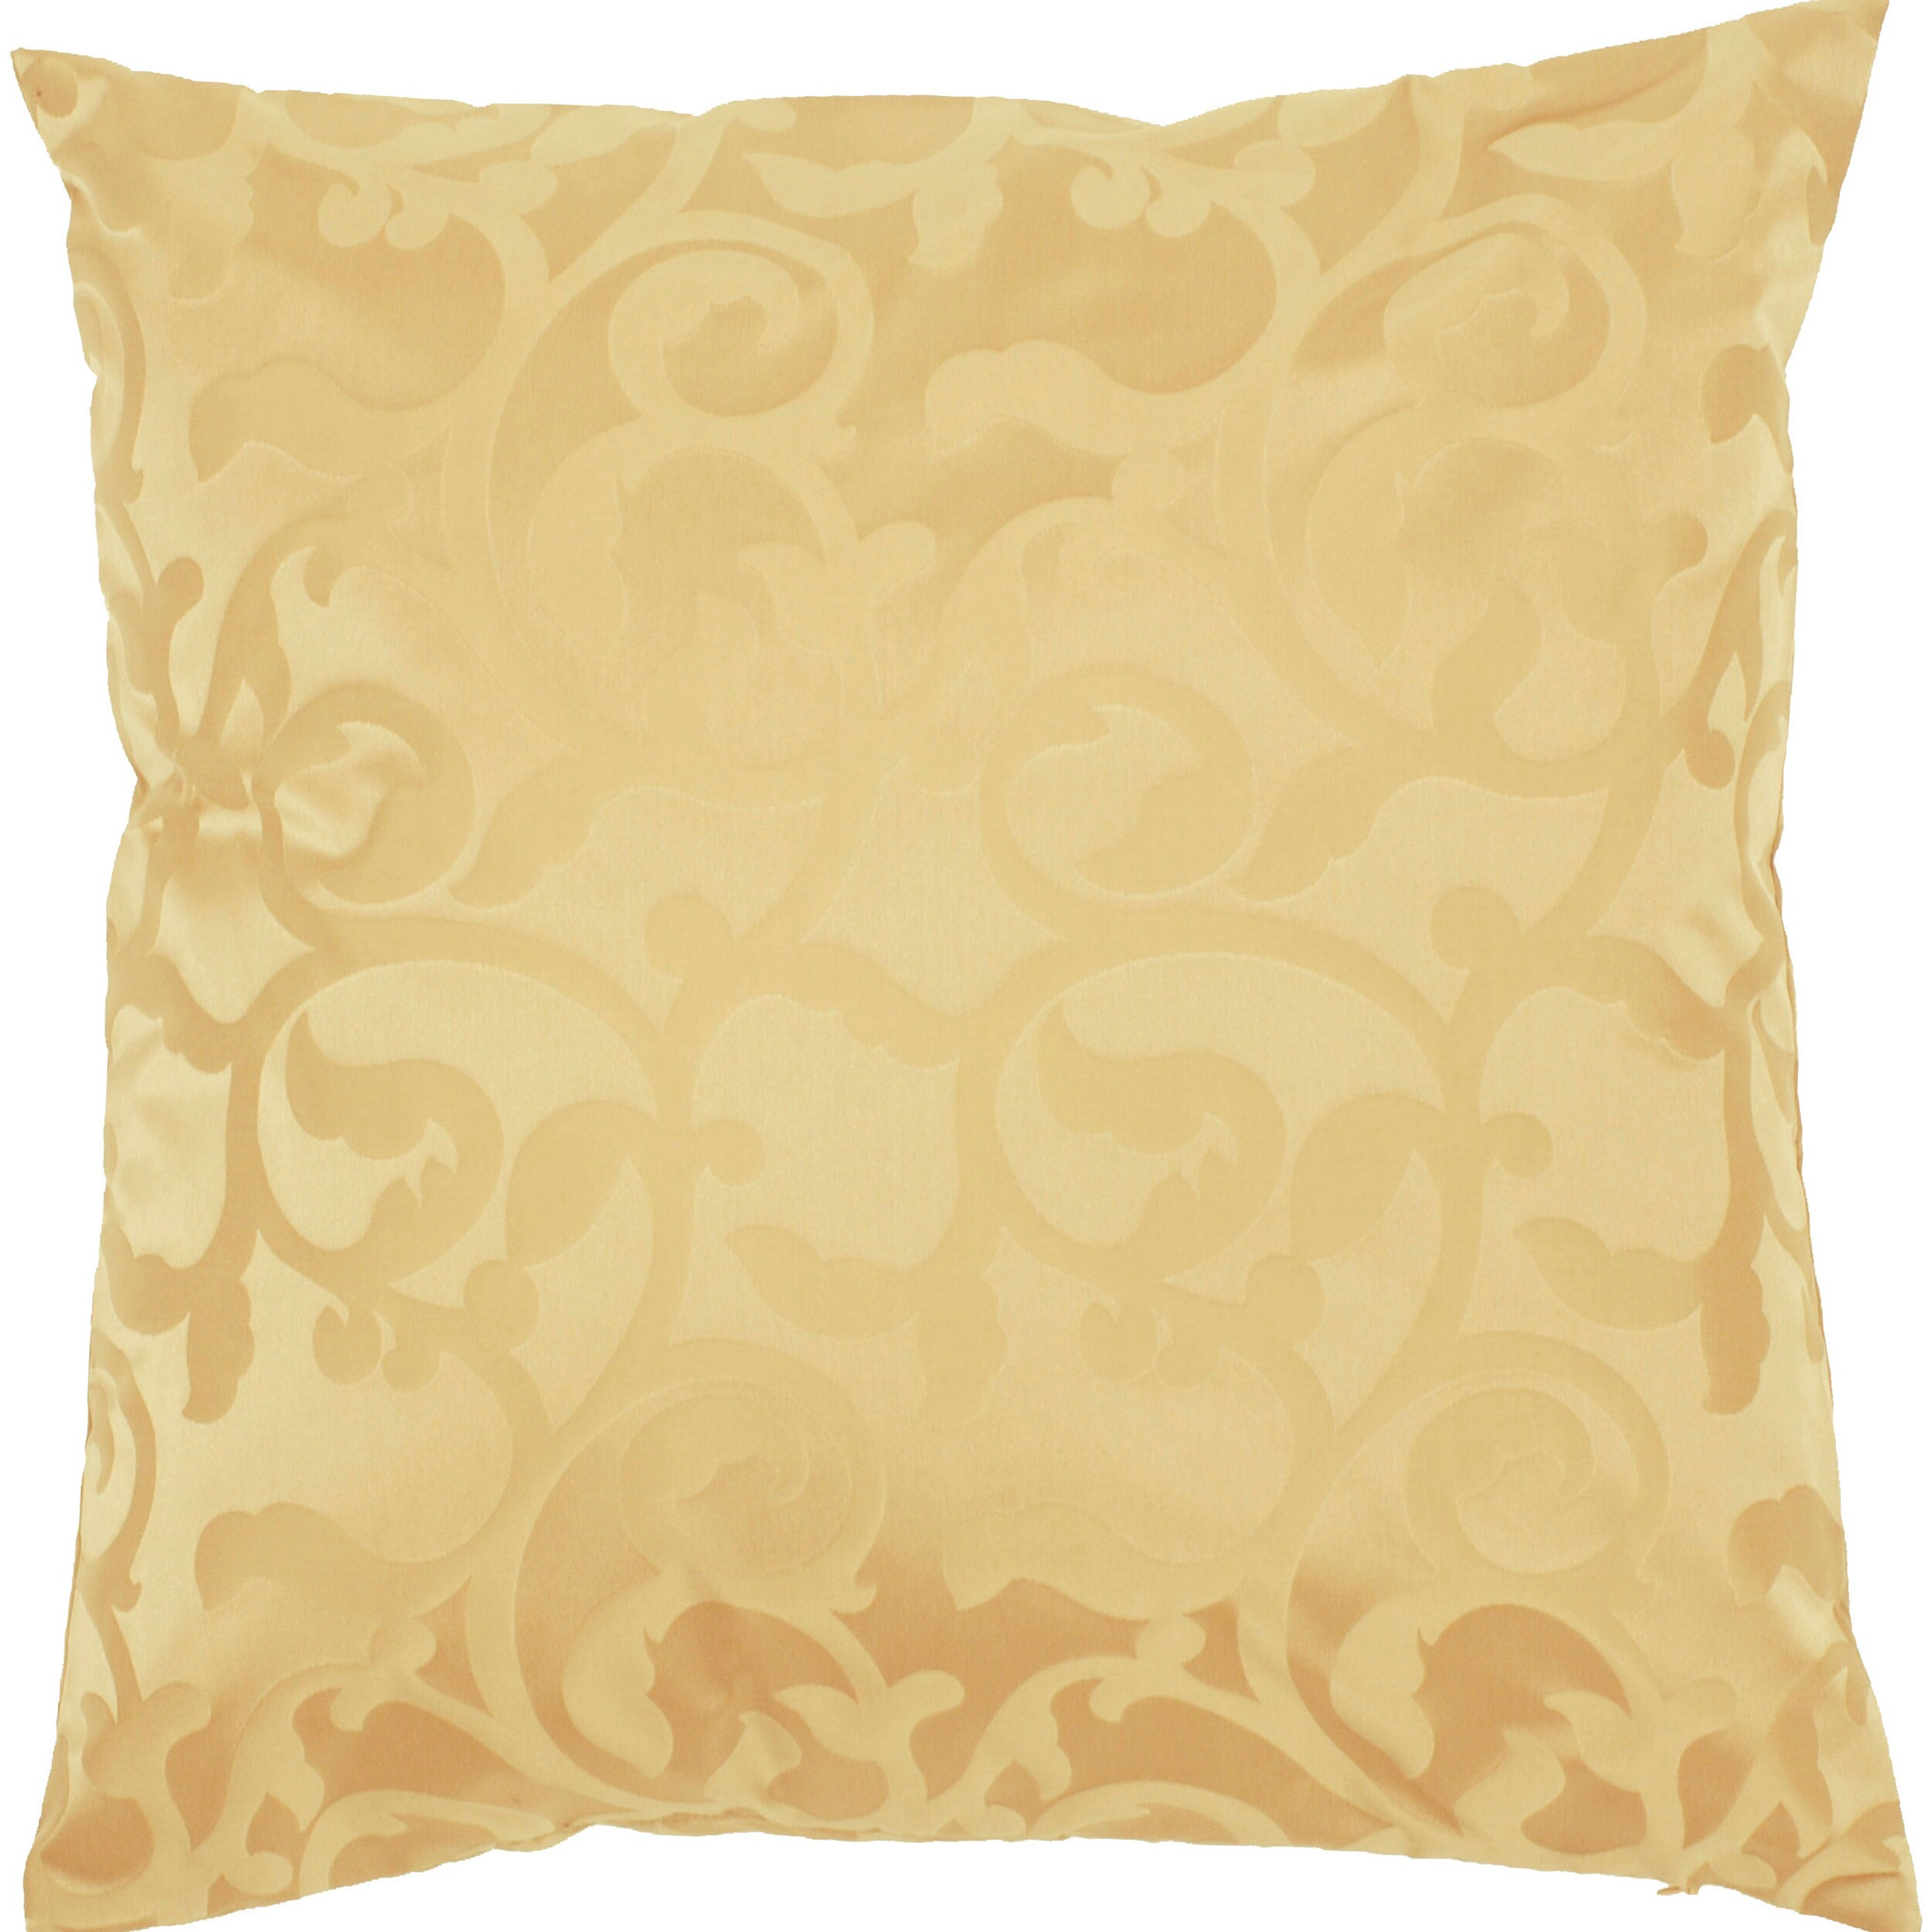 Decorative 18-inch Manchester Pillow